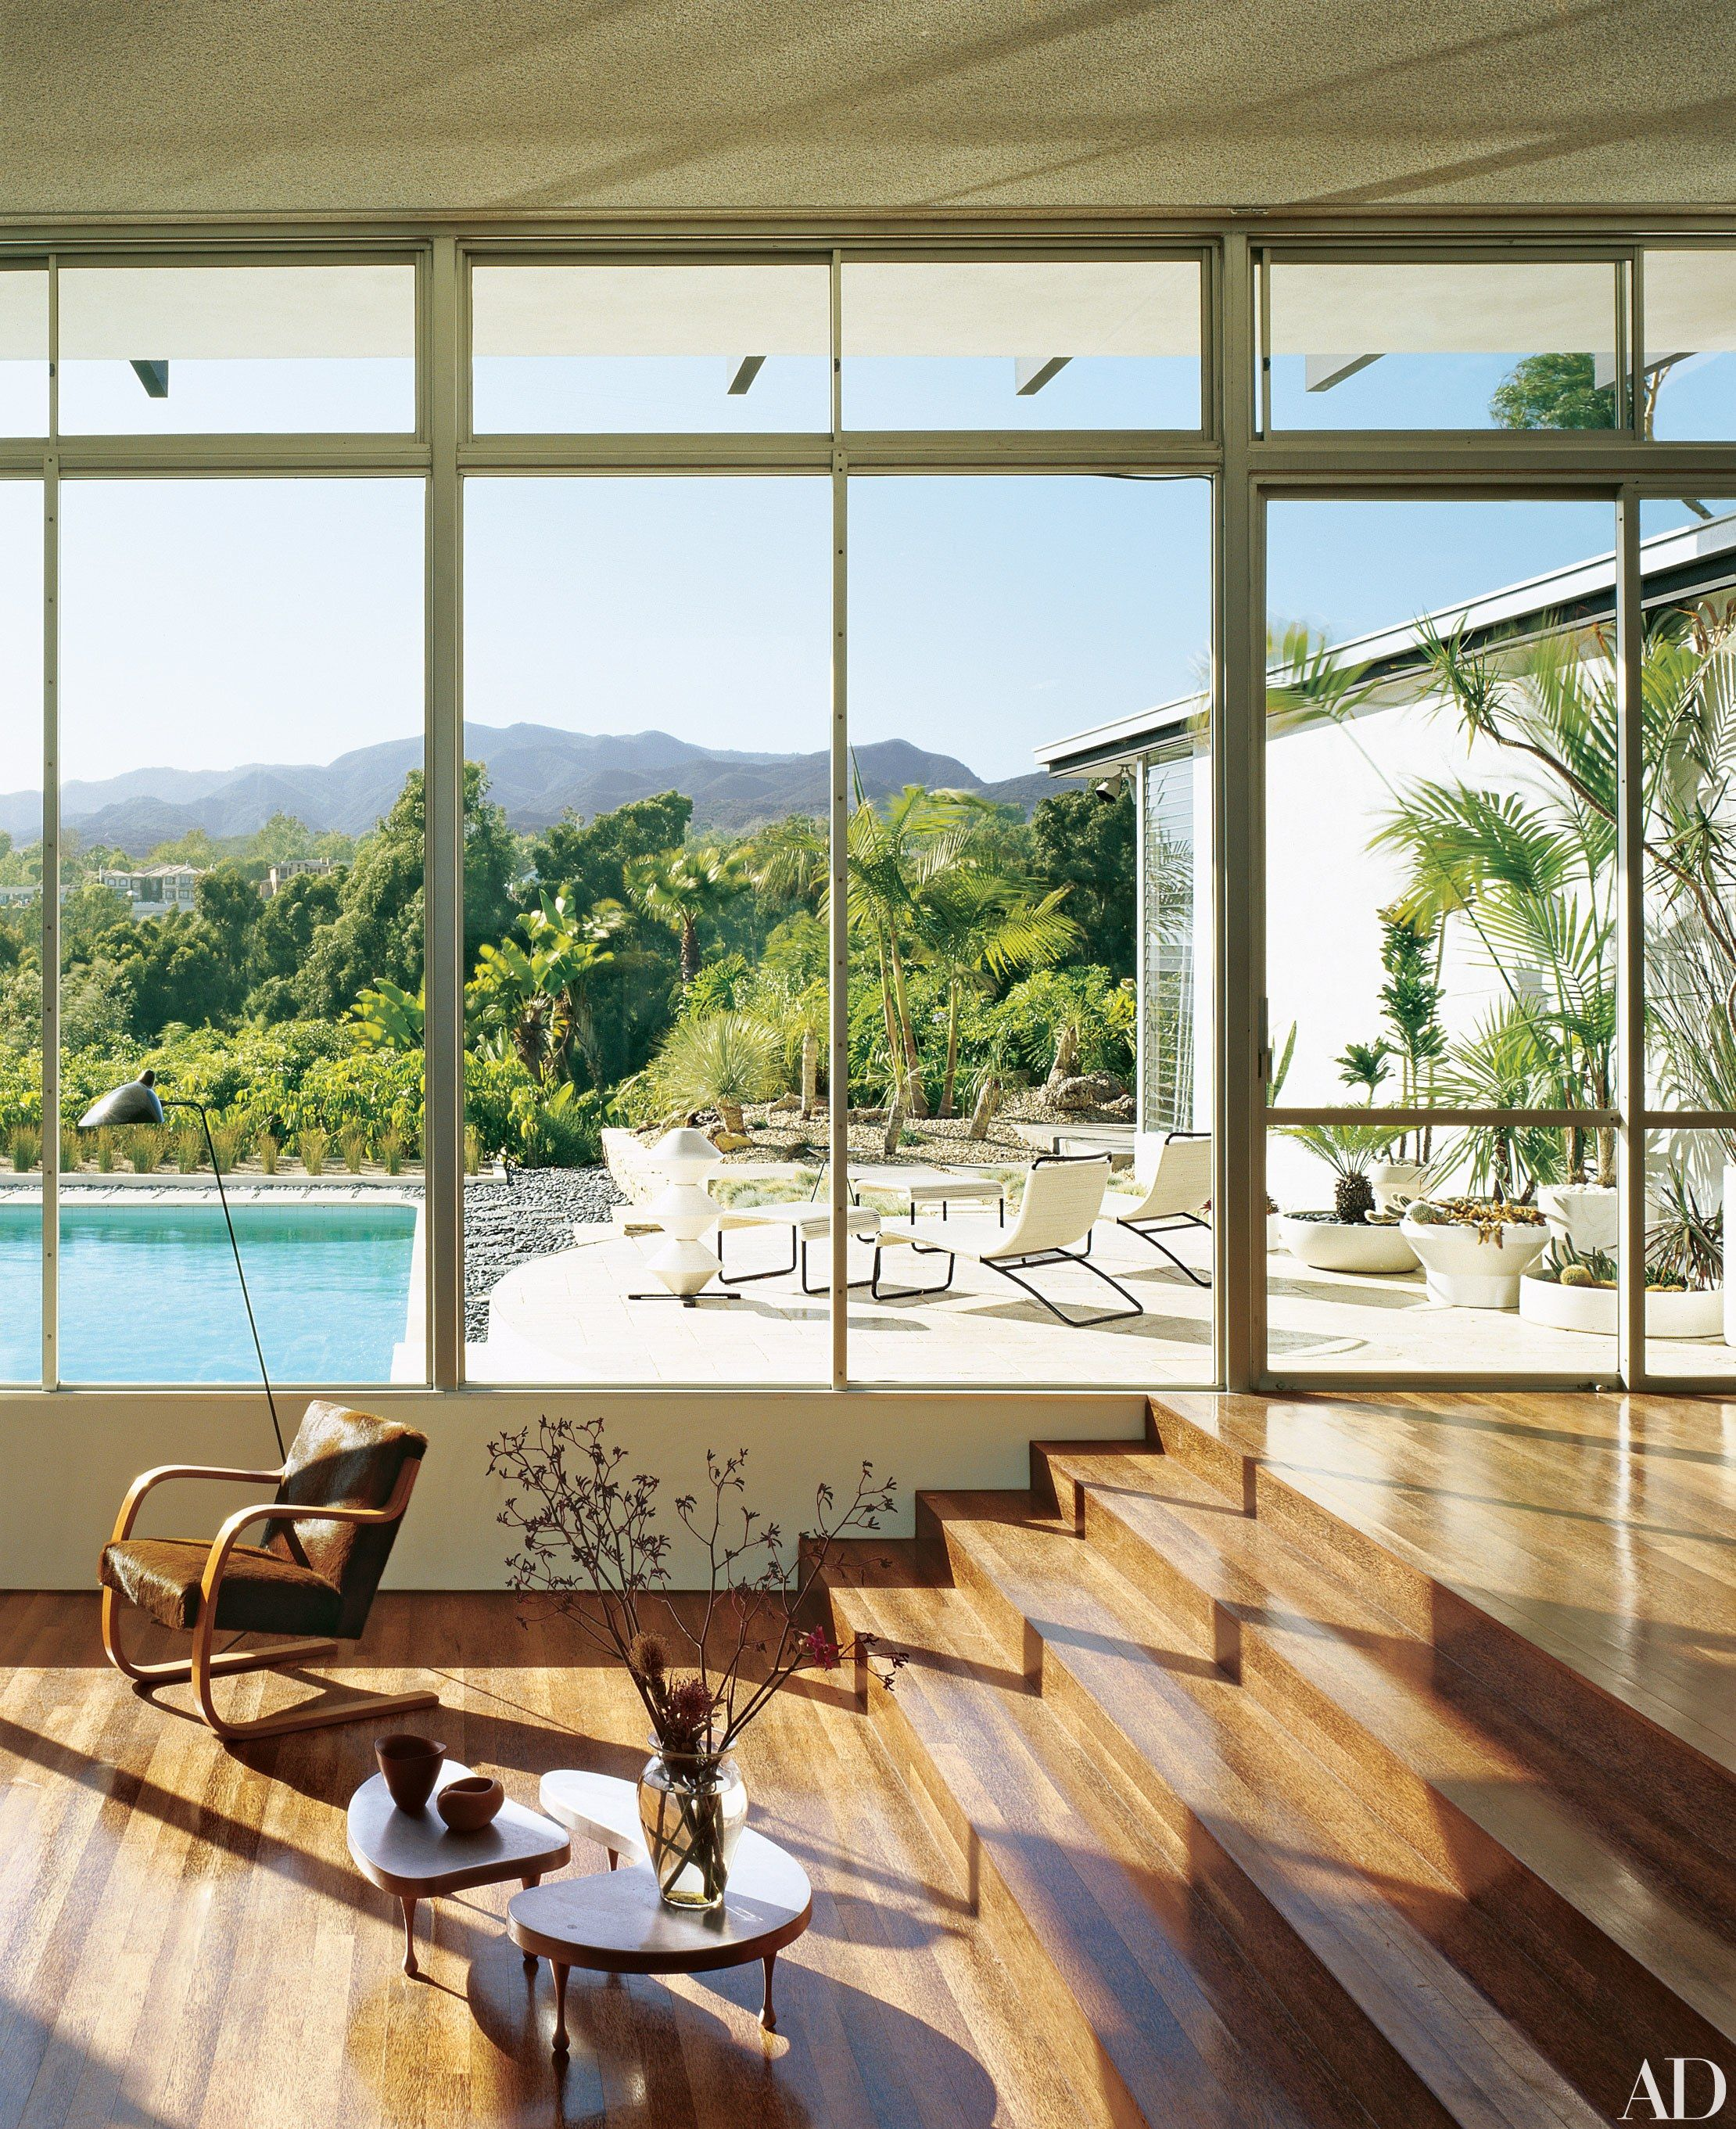 Pict mid century modern window shades 11 - 11 Mountainside Homes With Unbelievable Views